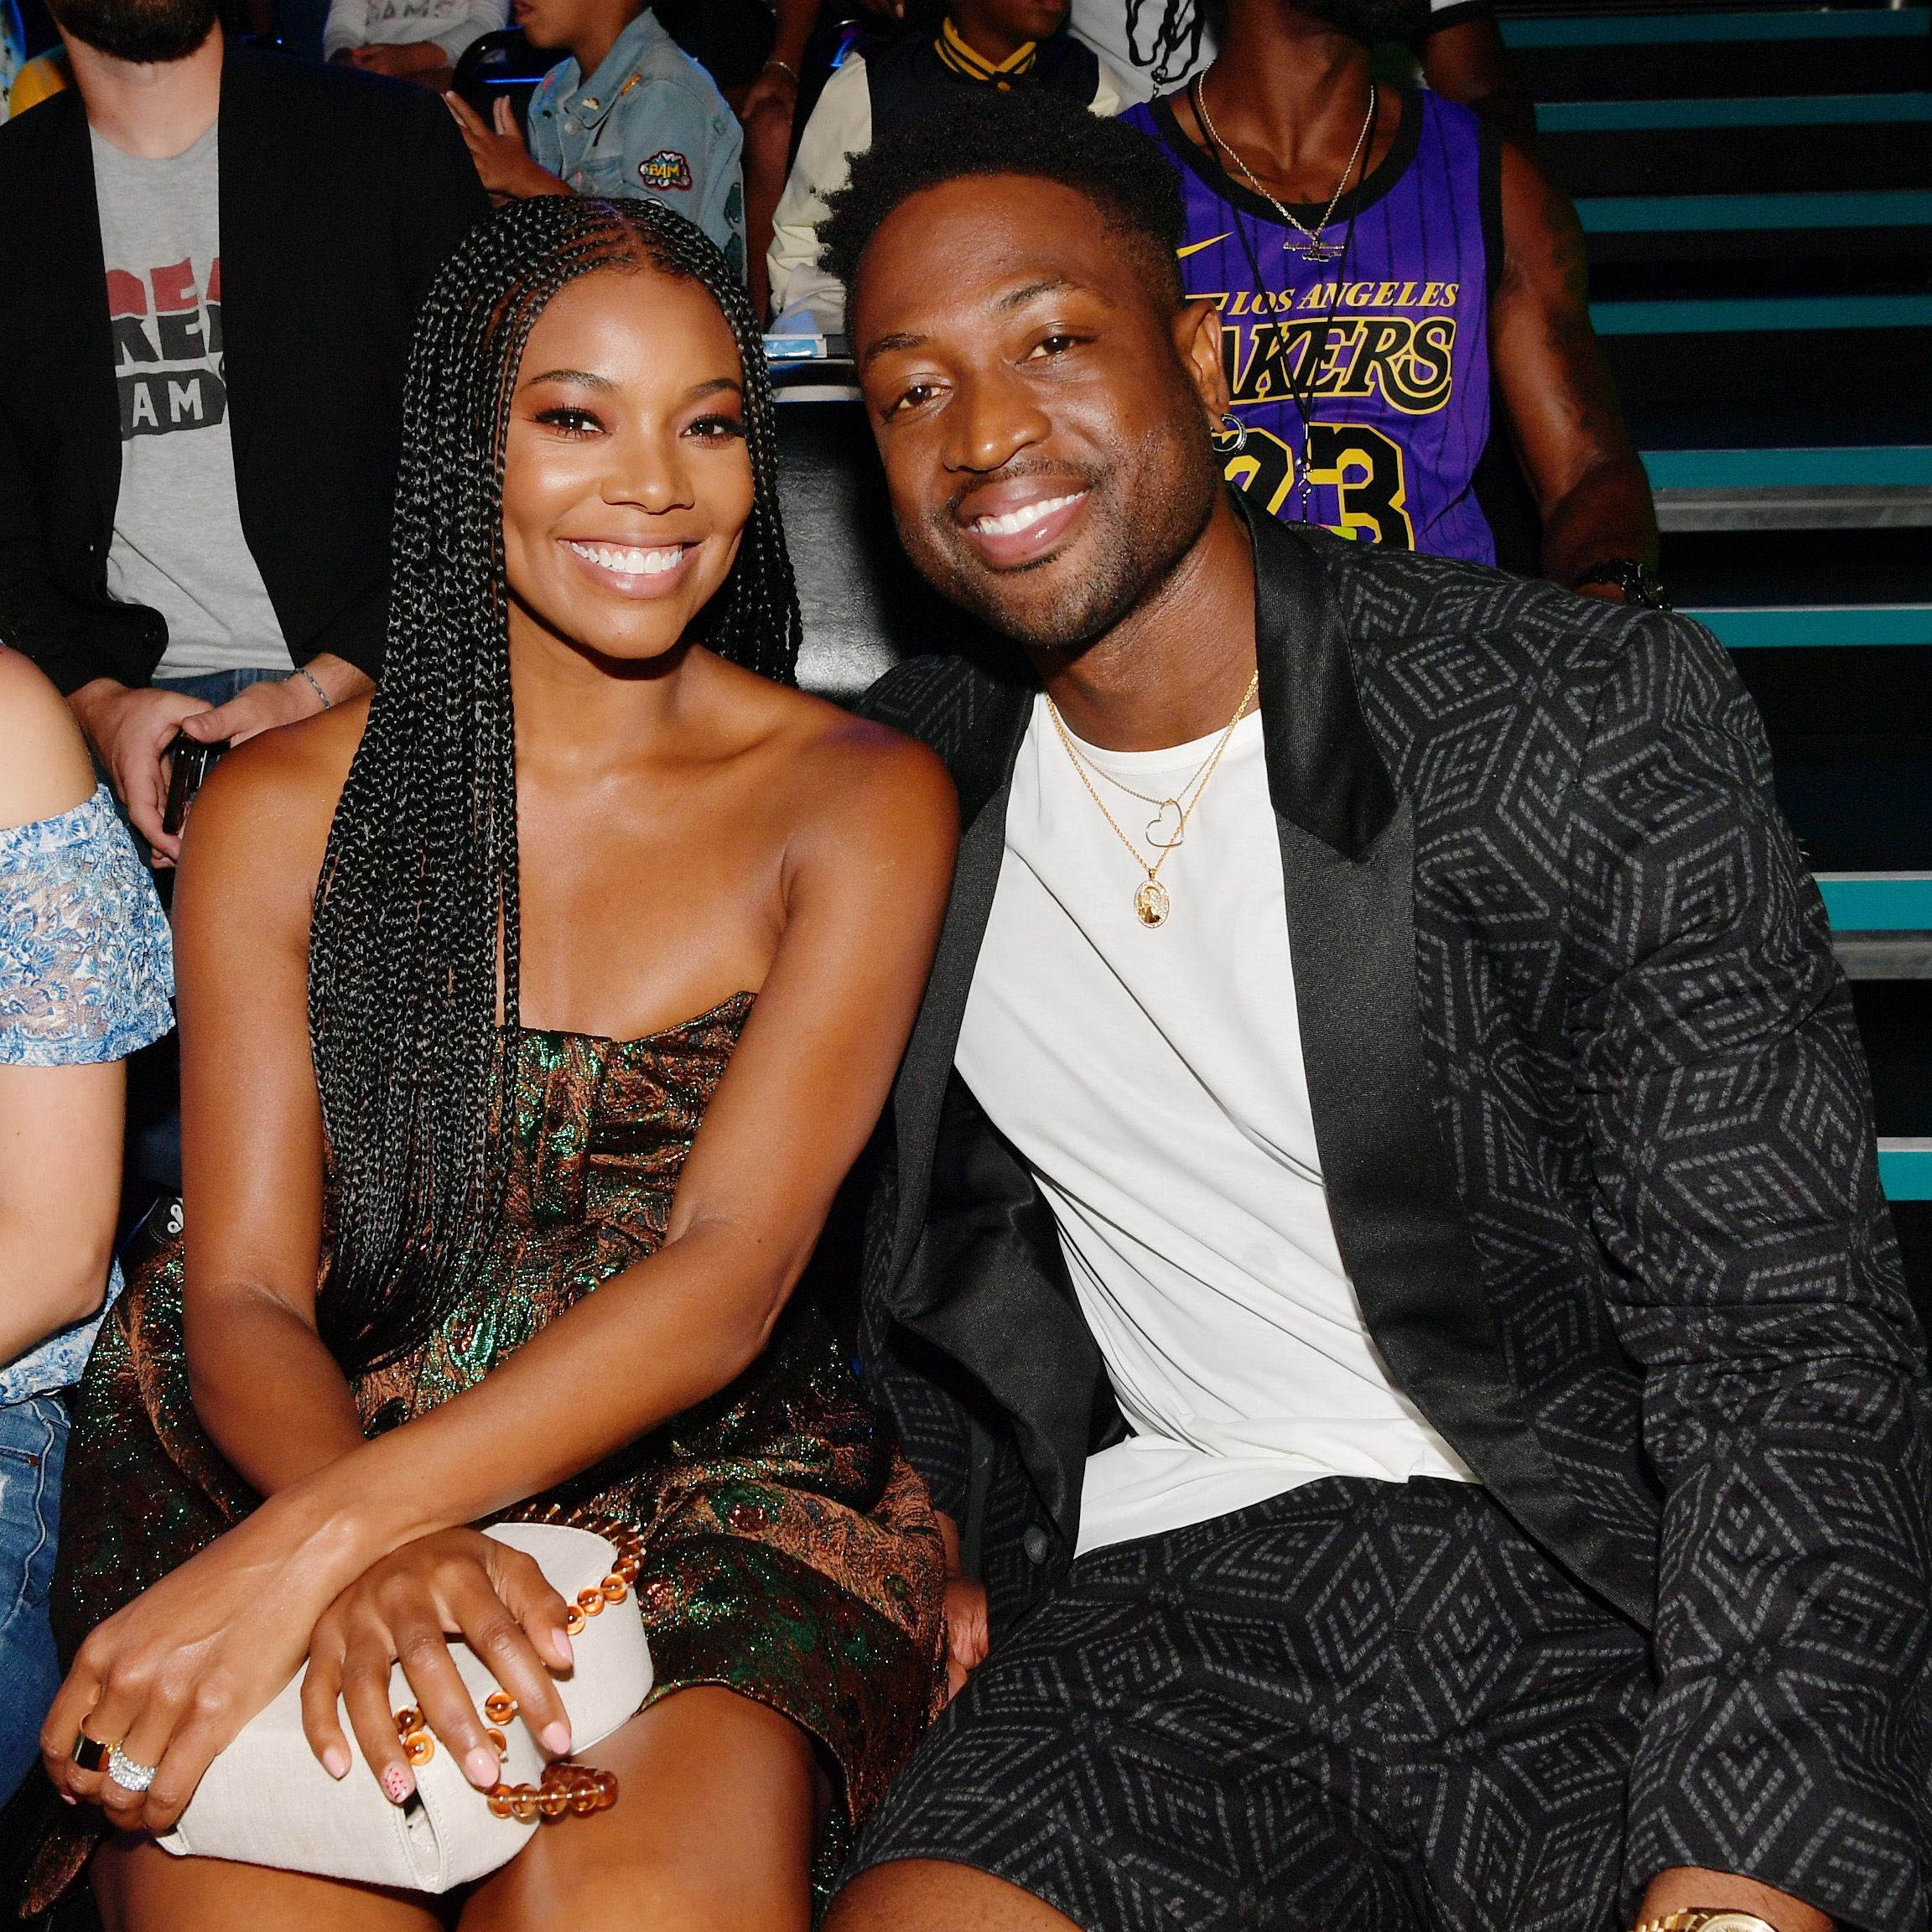 Gabrielle Union and Dwyane Wade attending a Nickelodeon event on July 11, 2019 in California | Photo: Getty Images